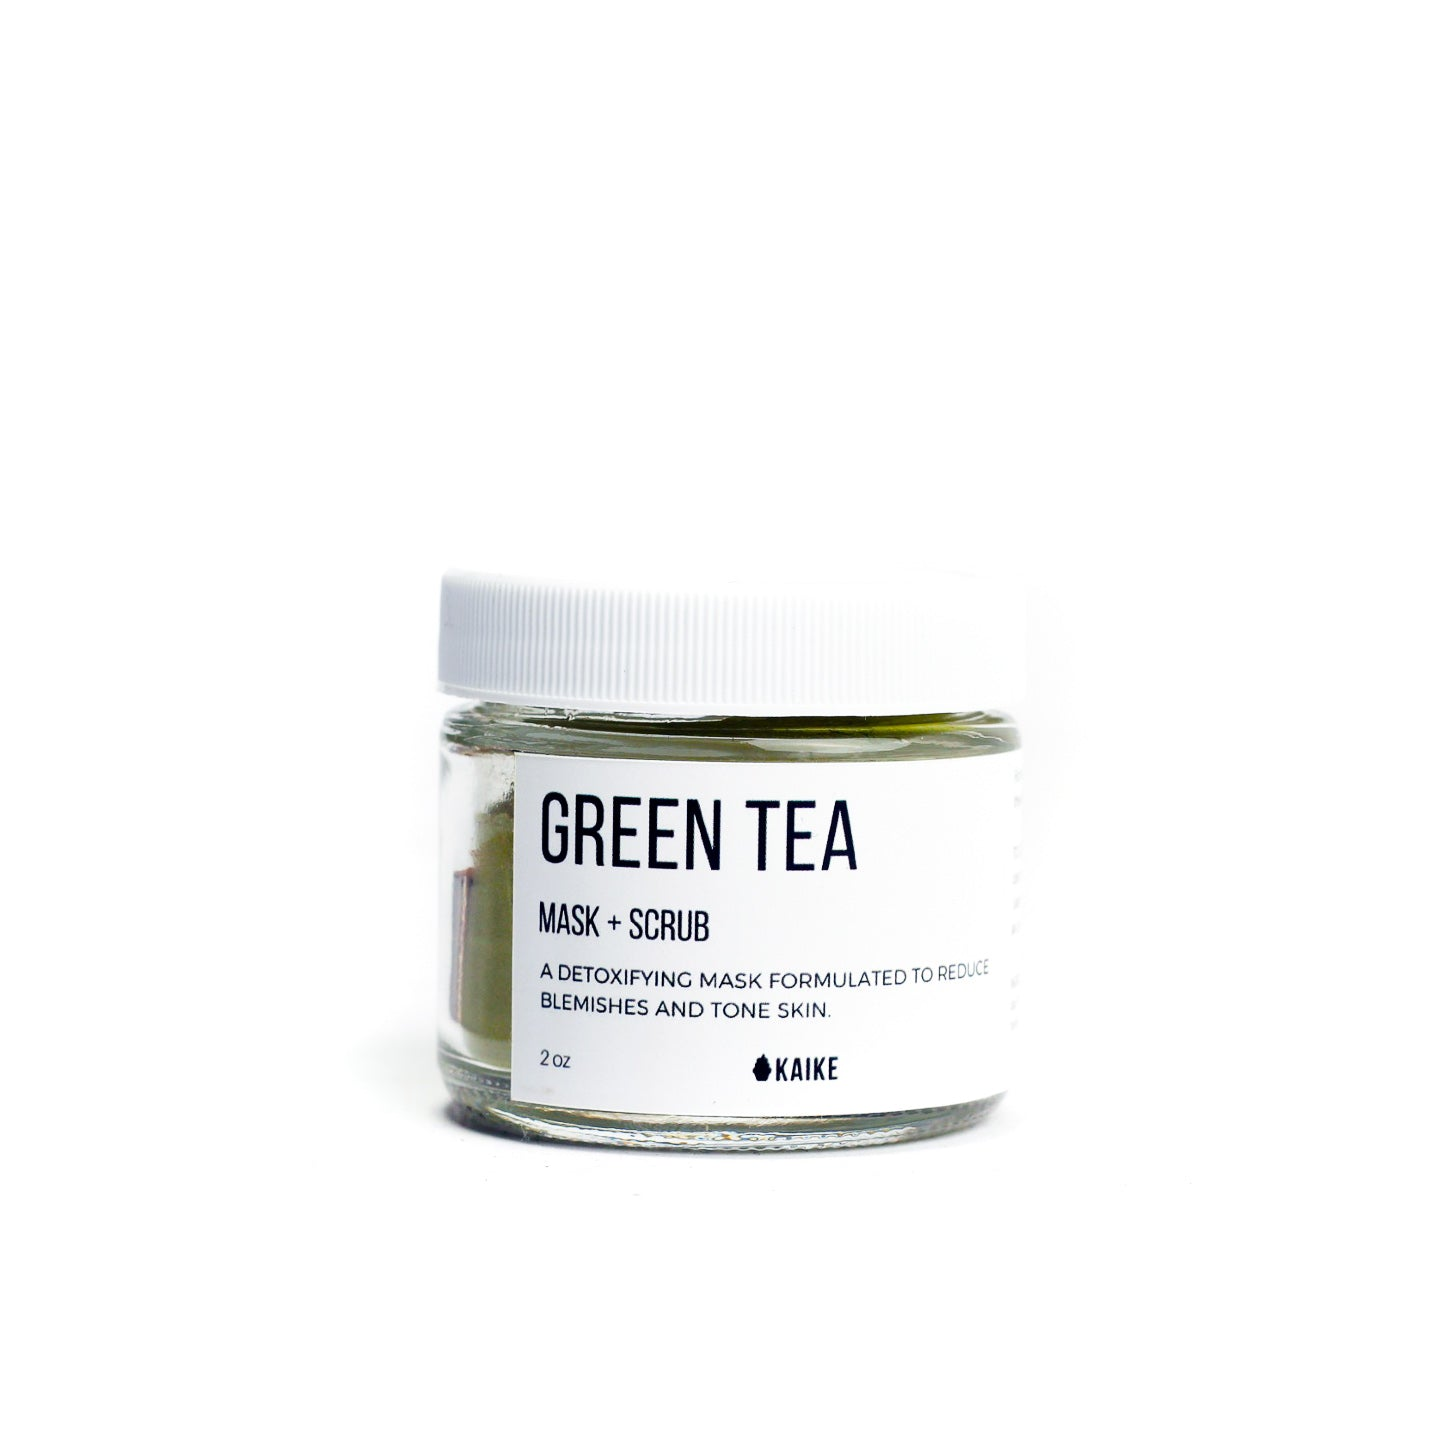 Green Tea Mask + Scrub - 2 oz